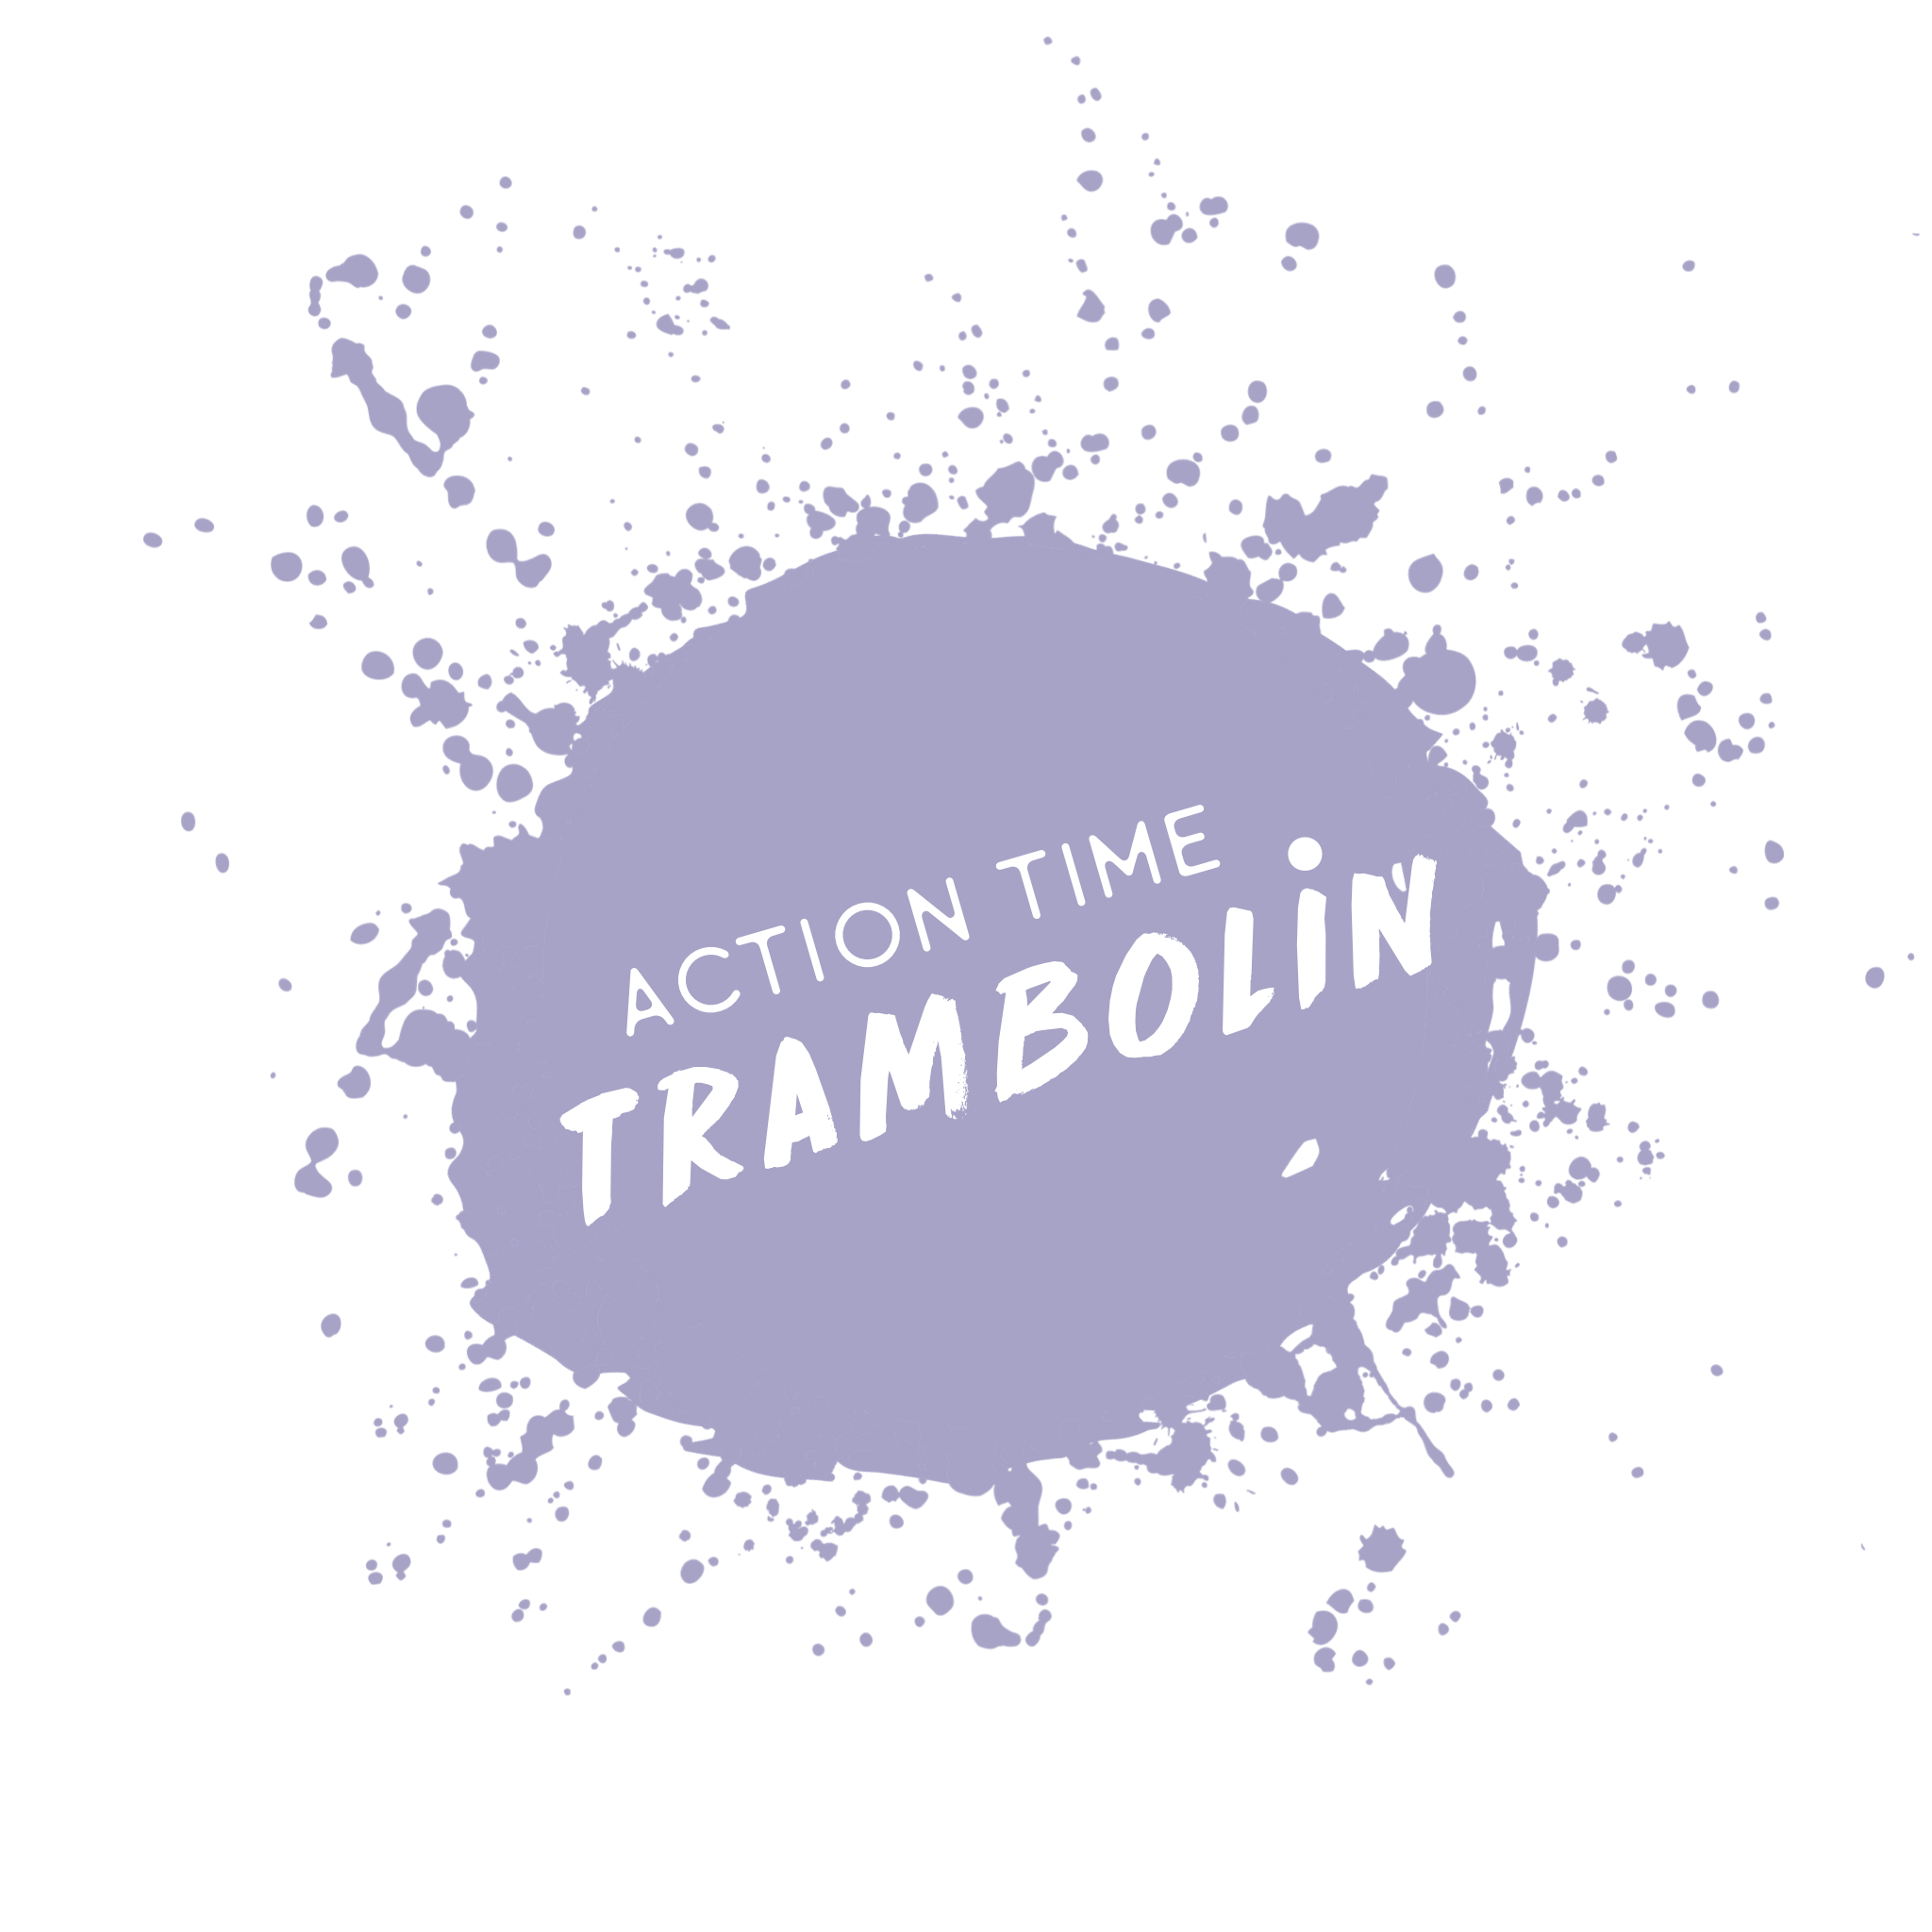 Action Time Trambolin